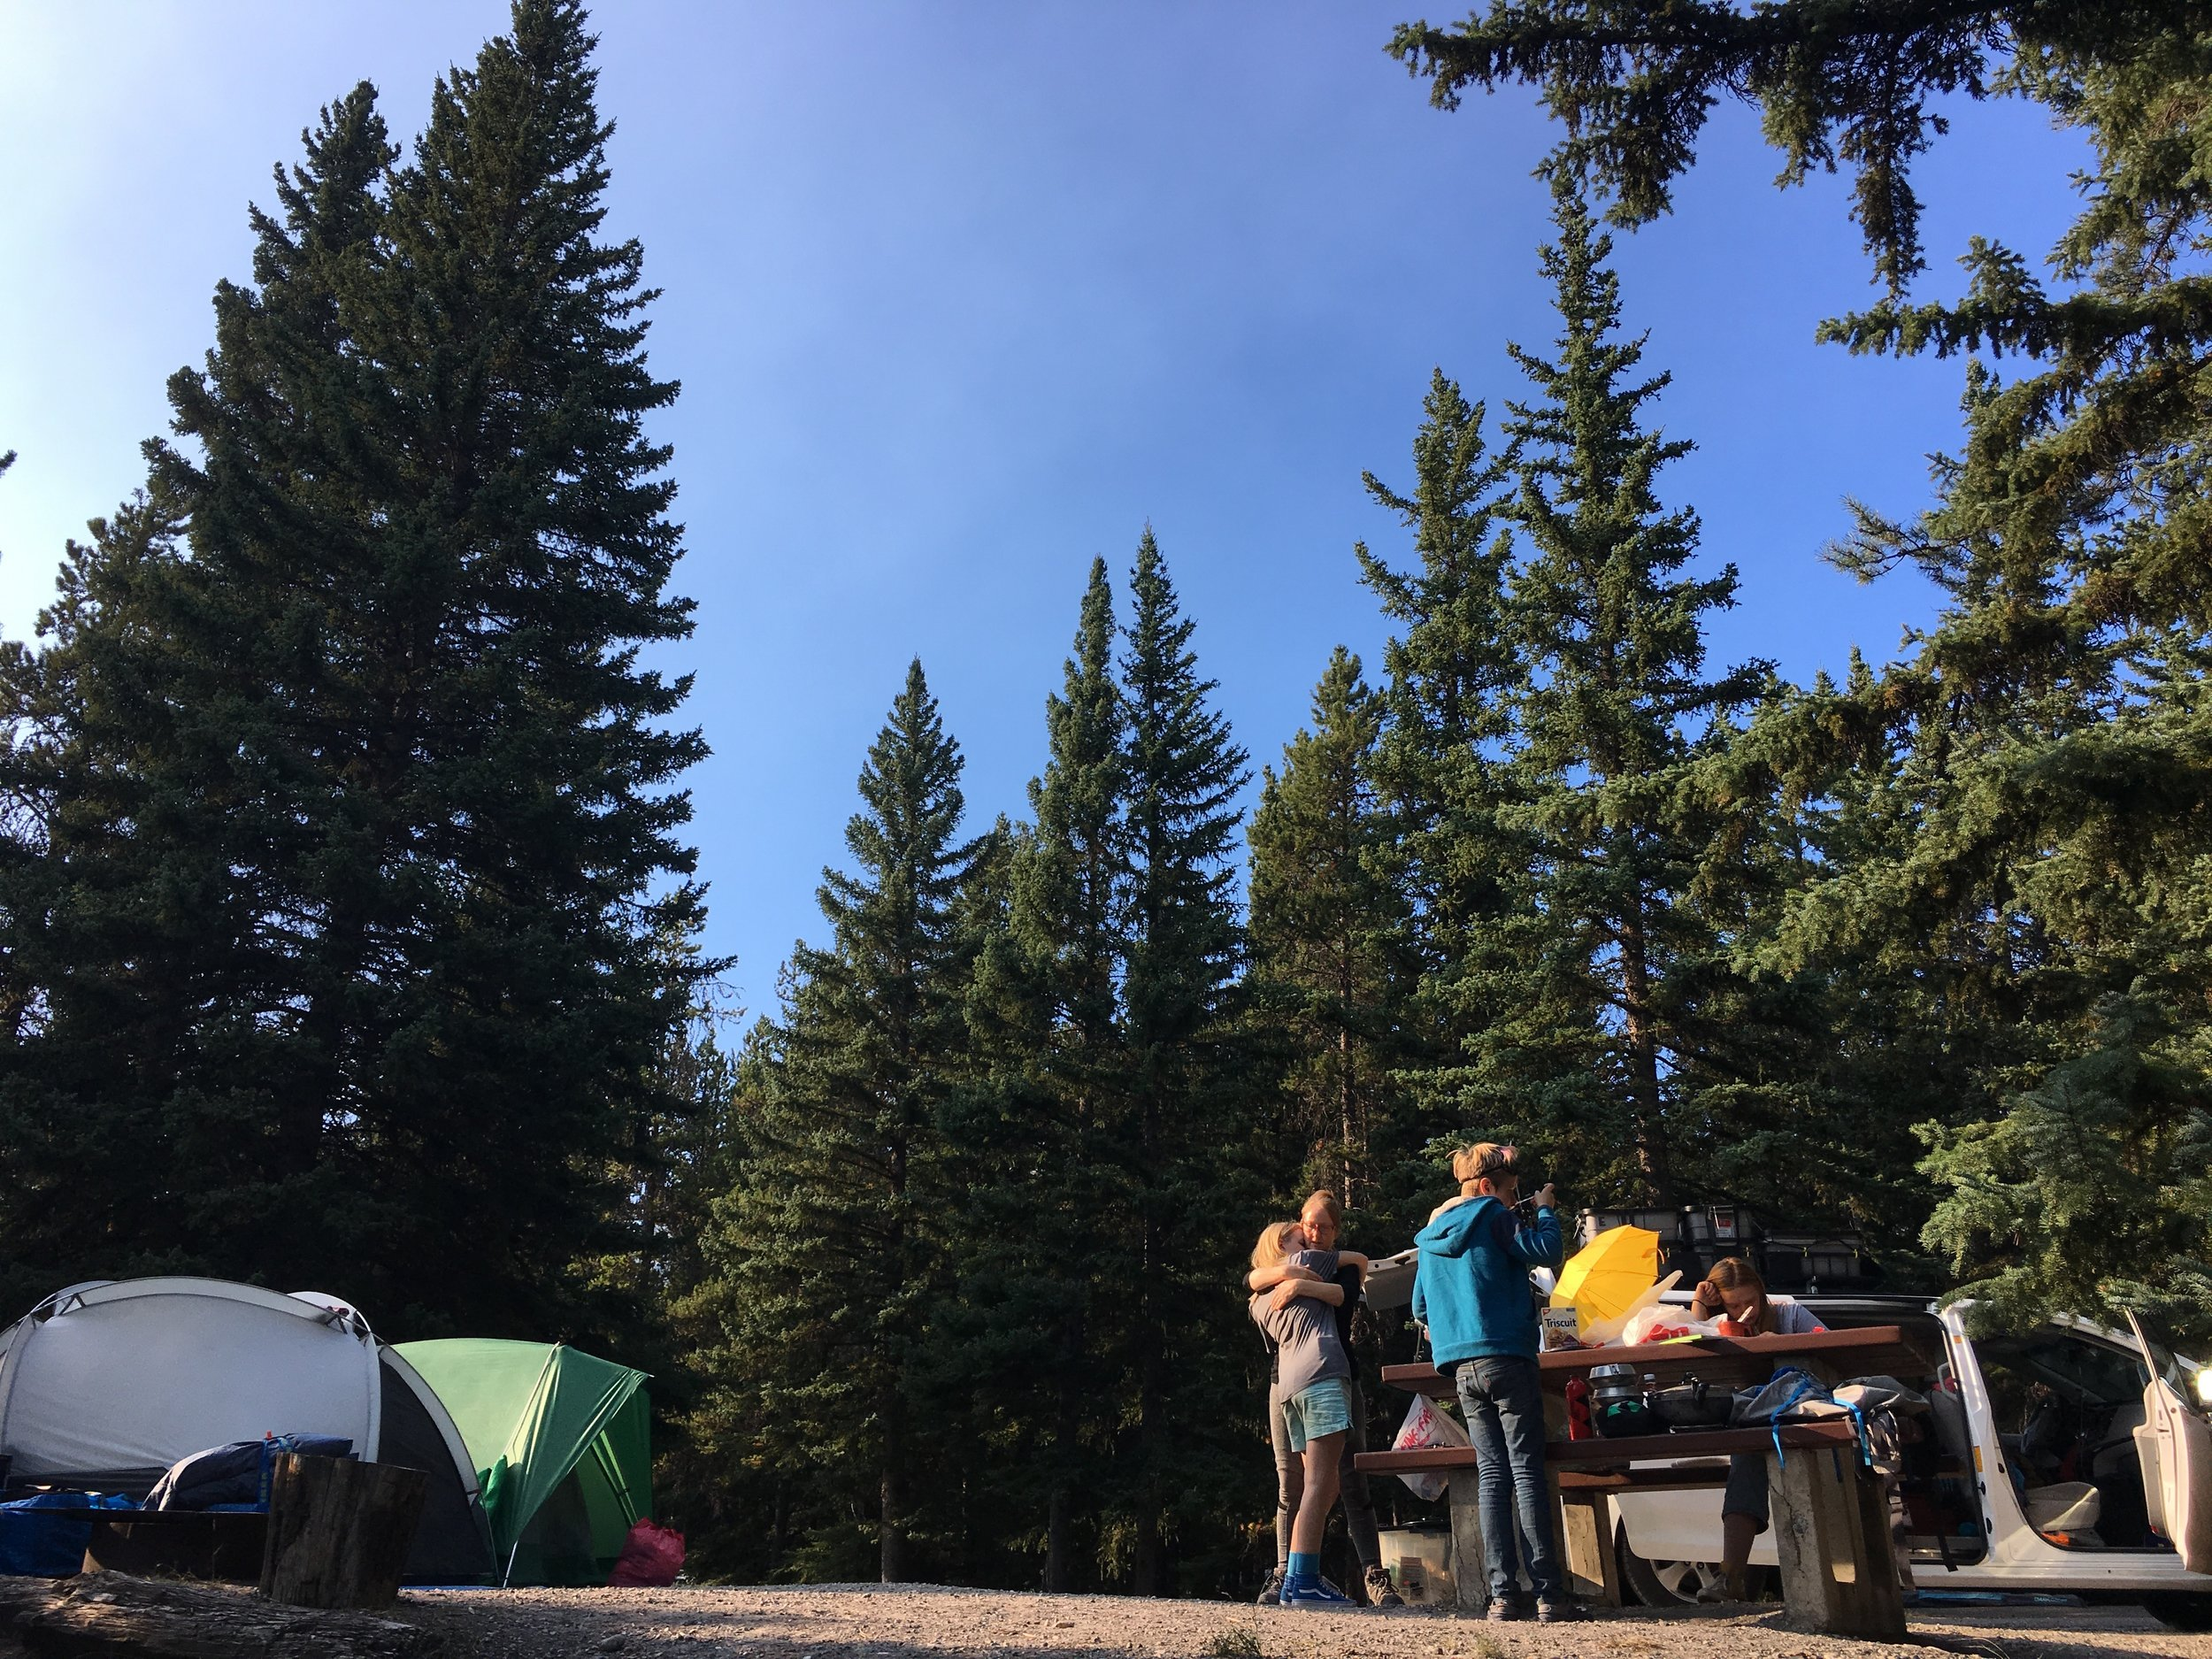 Our campsite in Banff